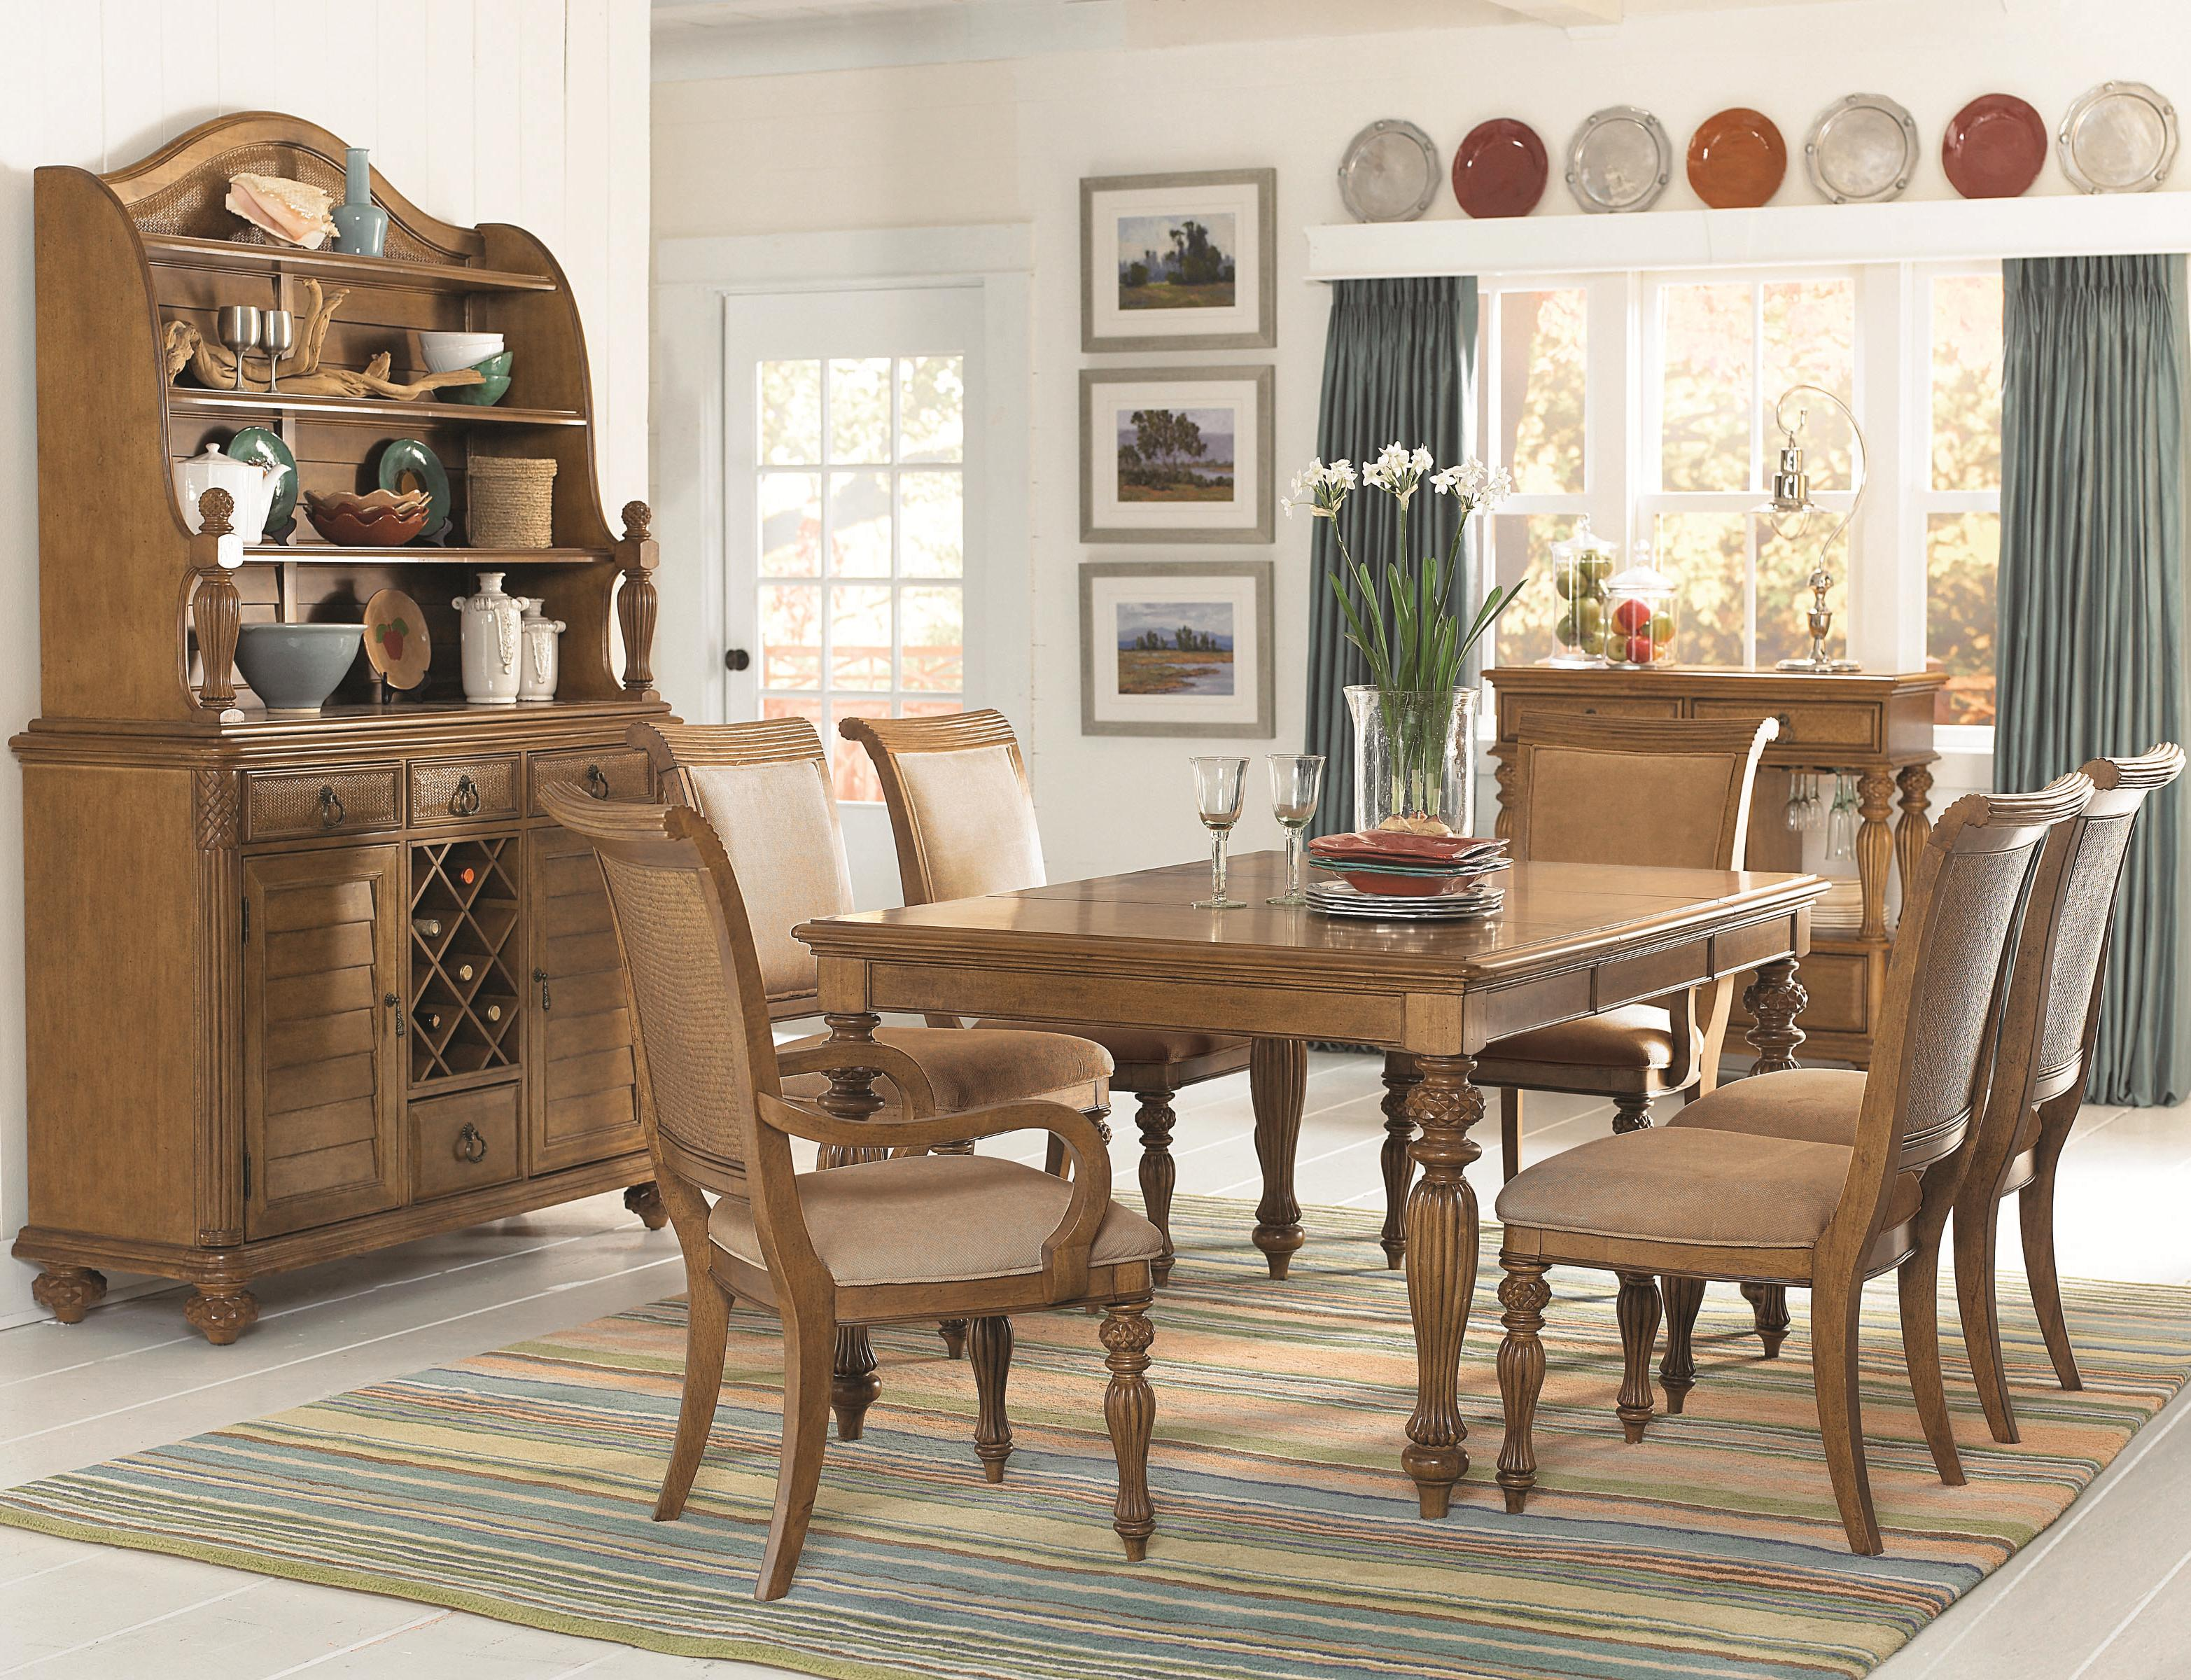 pedestal grand b island isle products item number room drew inspired american piece single dining set